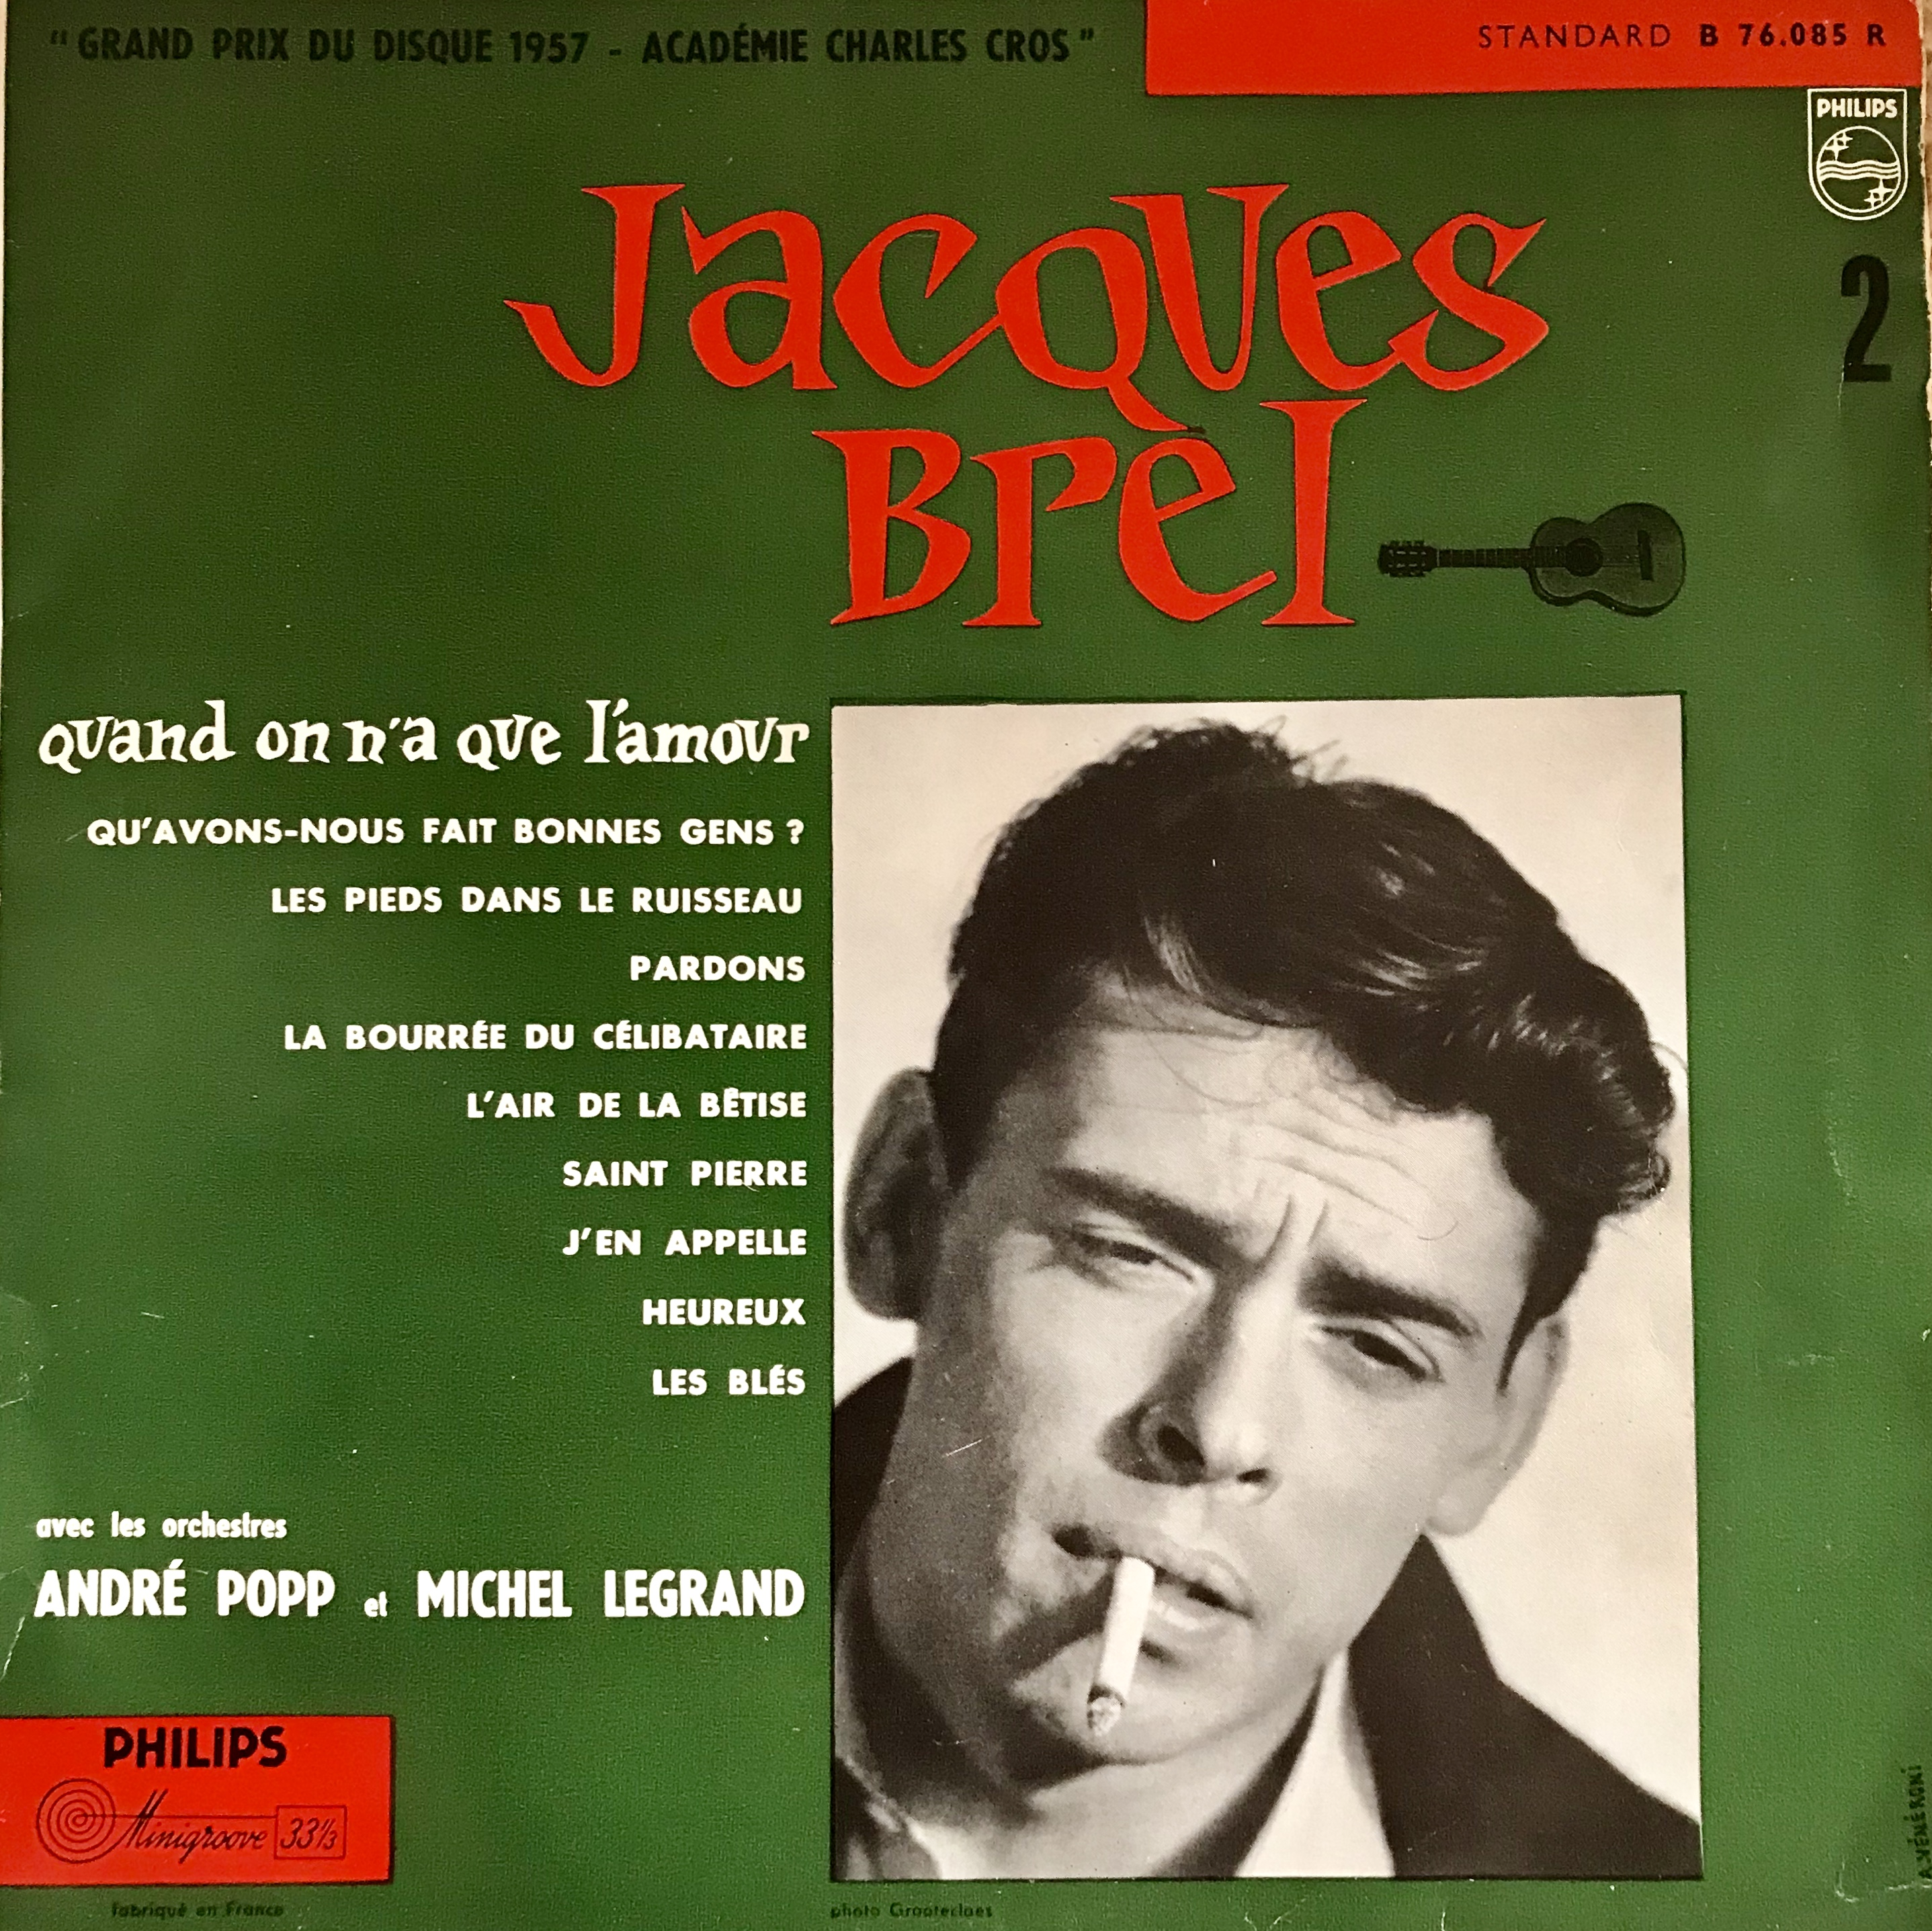 Jacques Brel, Quand On N'a Que L'Amour Album